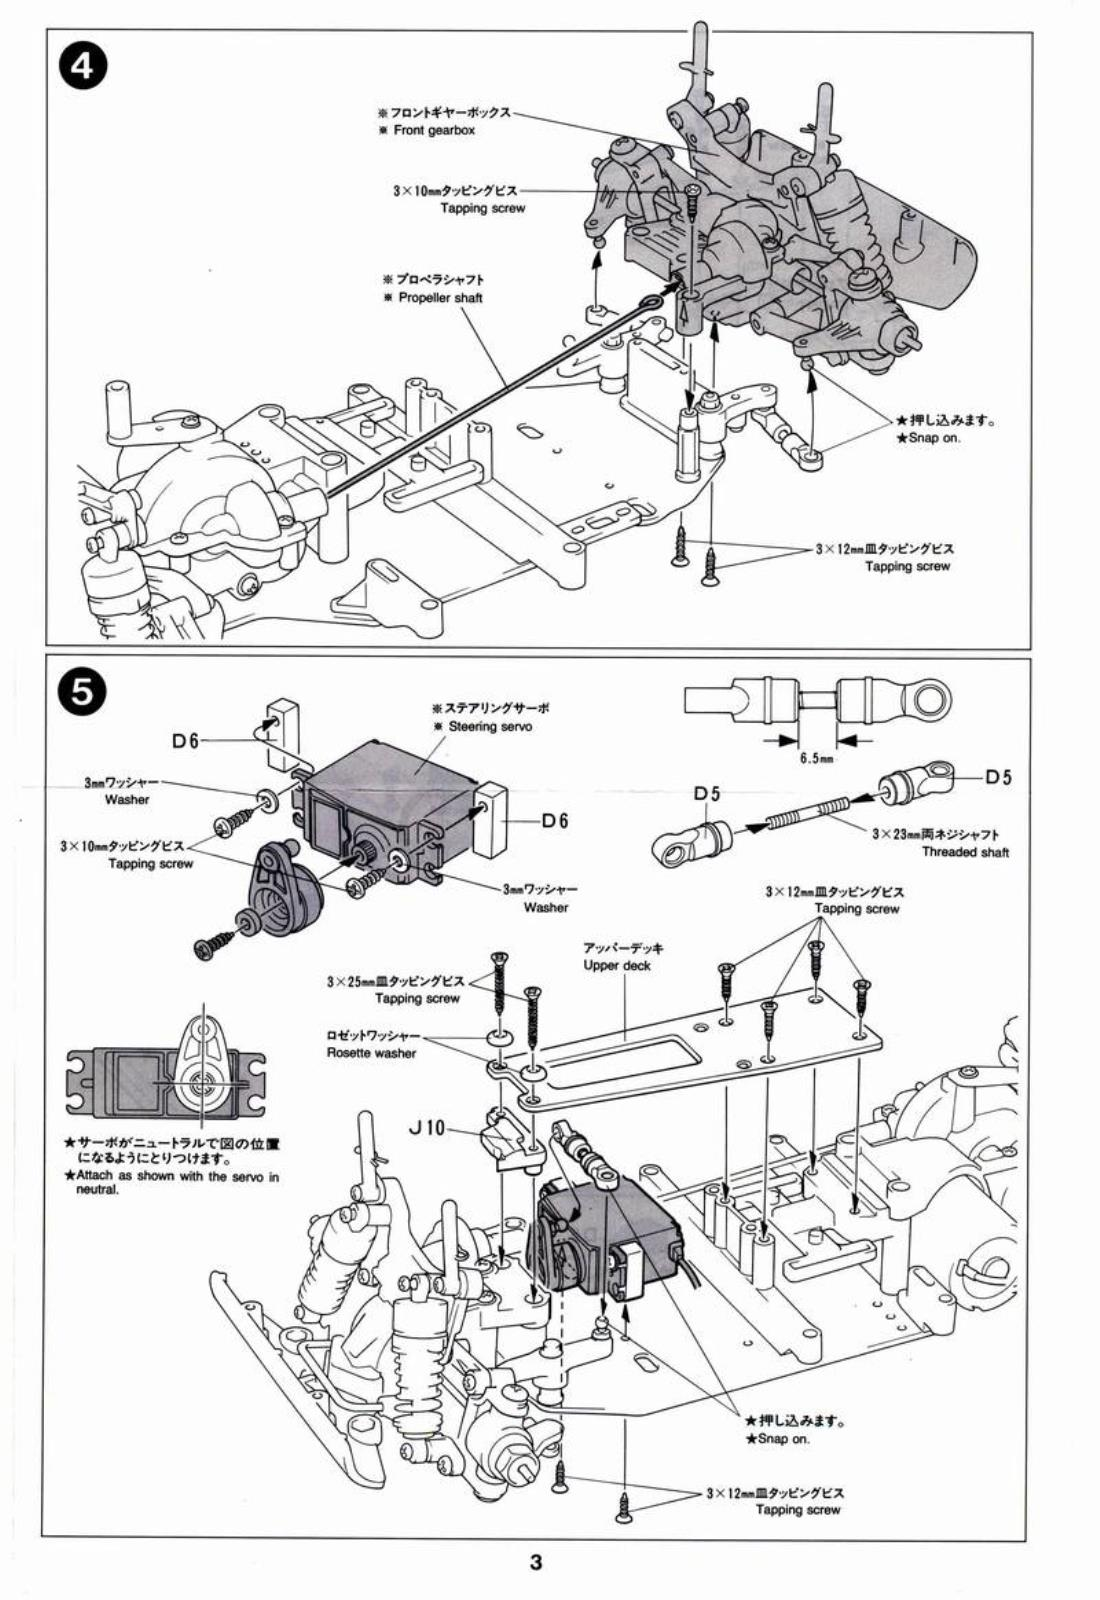 TAMIYA TA02 MANUAL DOWNLOAD